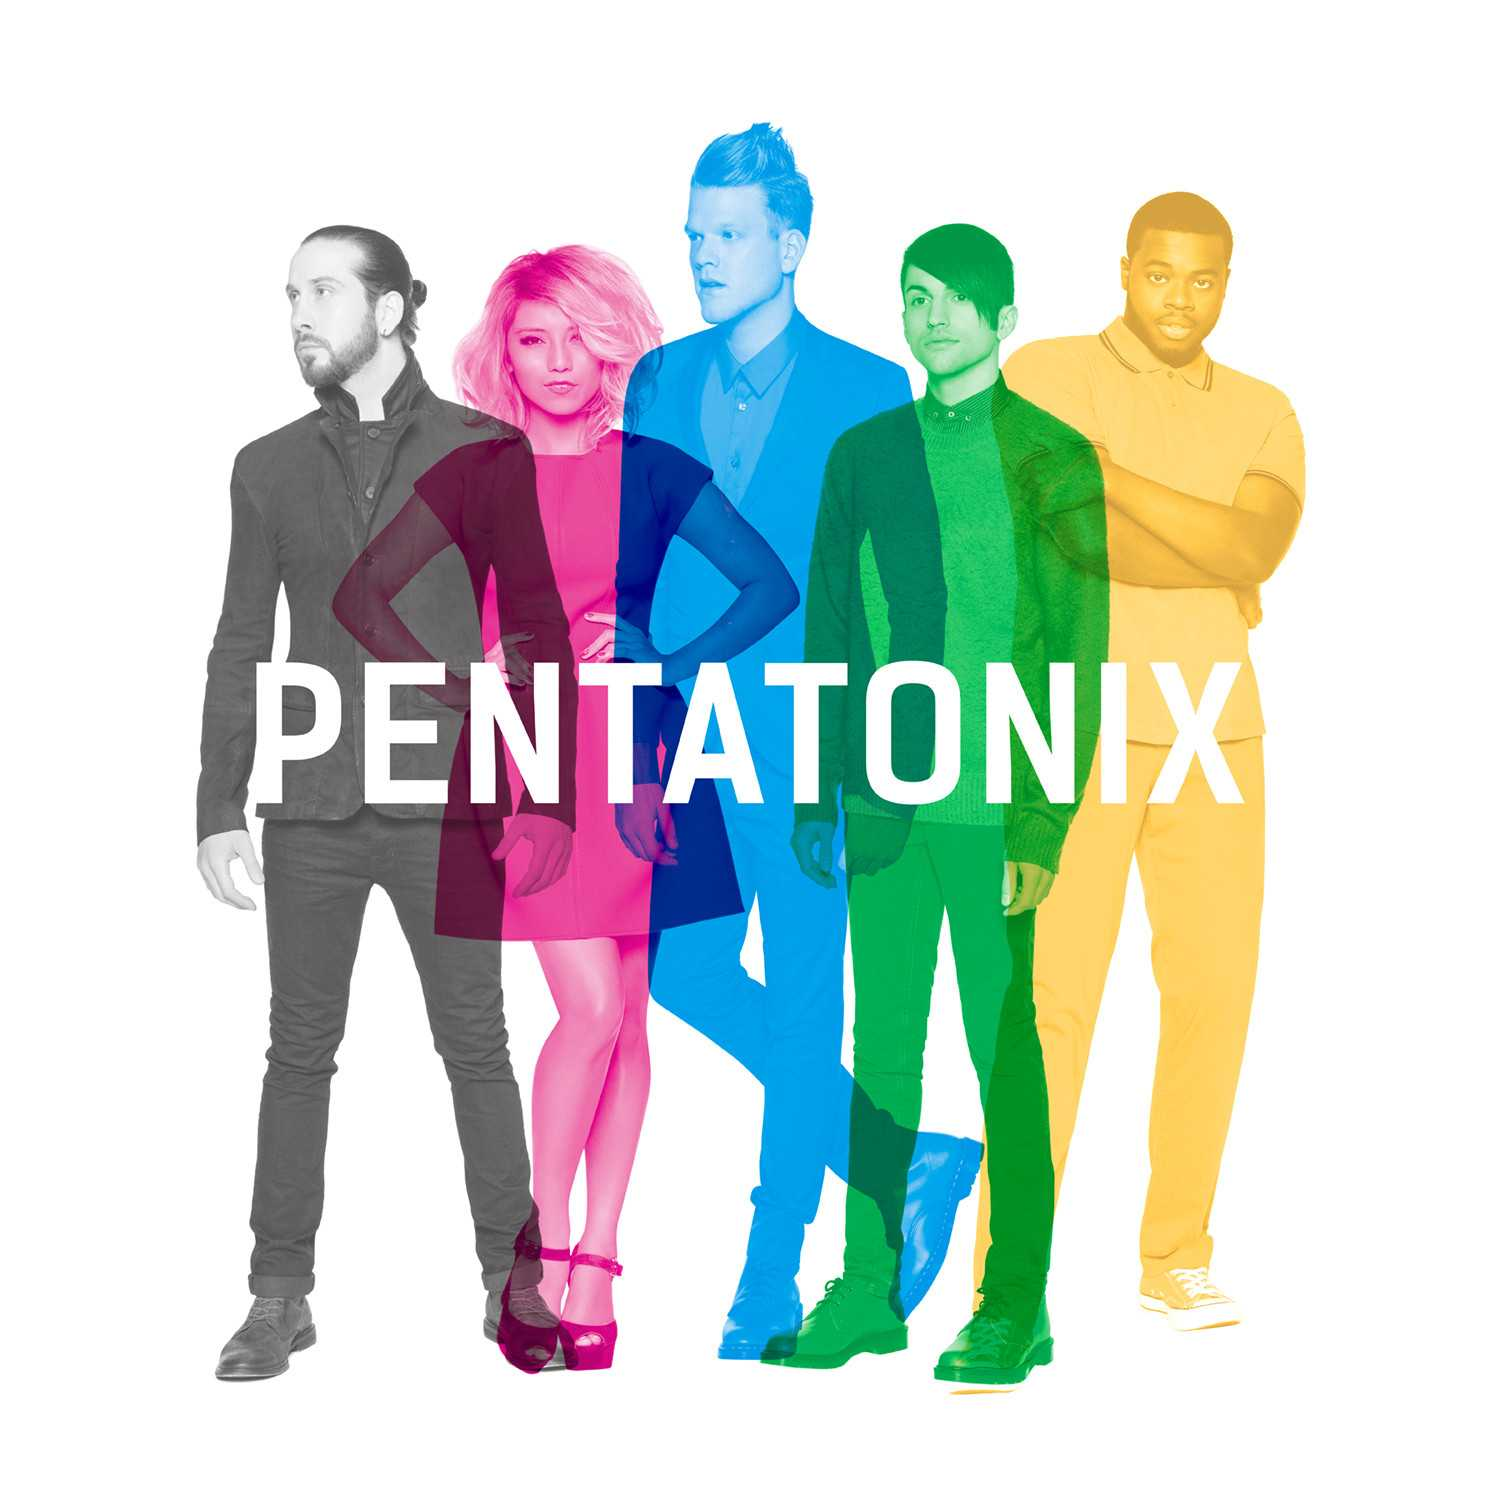 Mitch grassi on pentatonix s new lp nobody else has done what